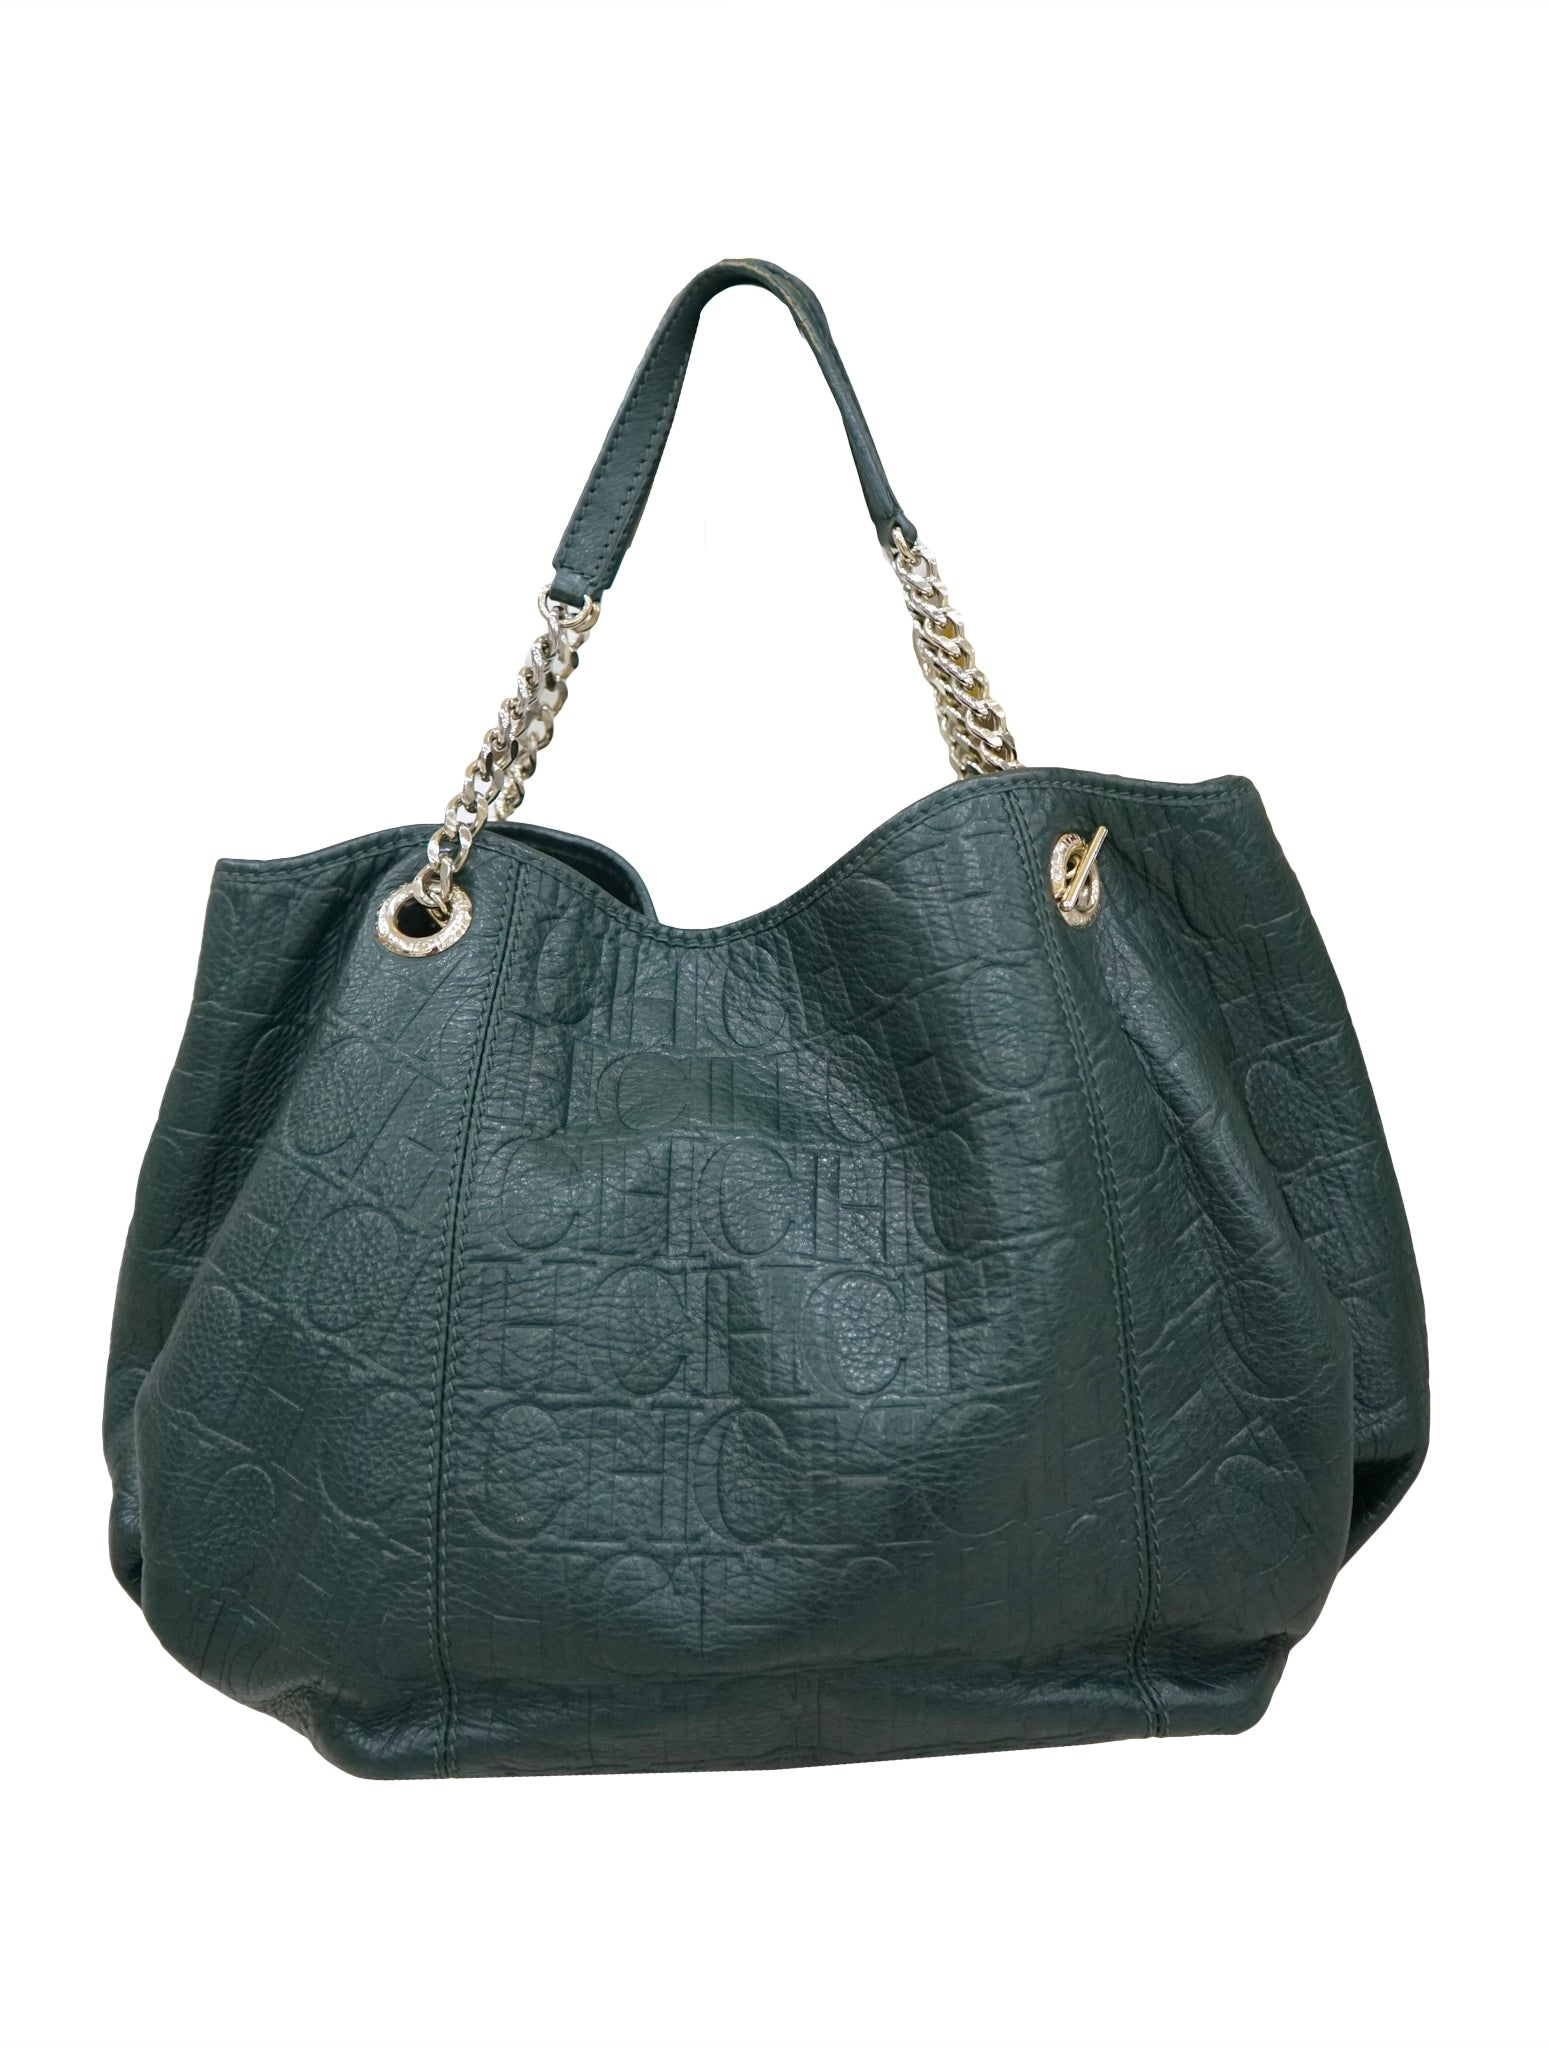 Carolina Herrera Green Monogram Leather Audrey Tote Style For Less